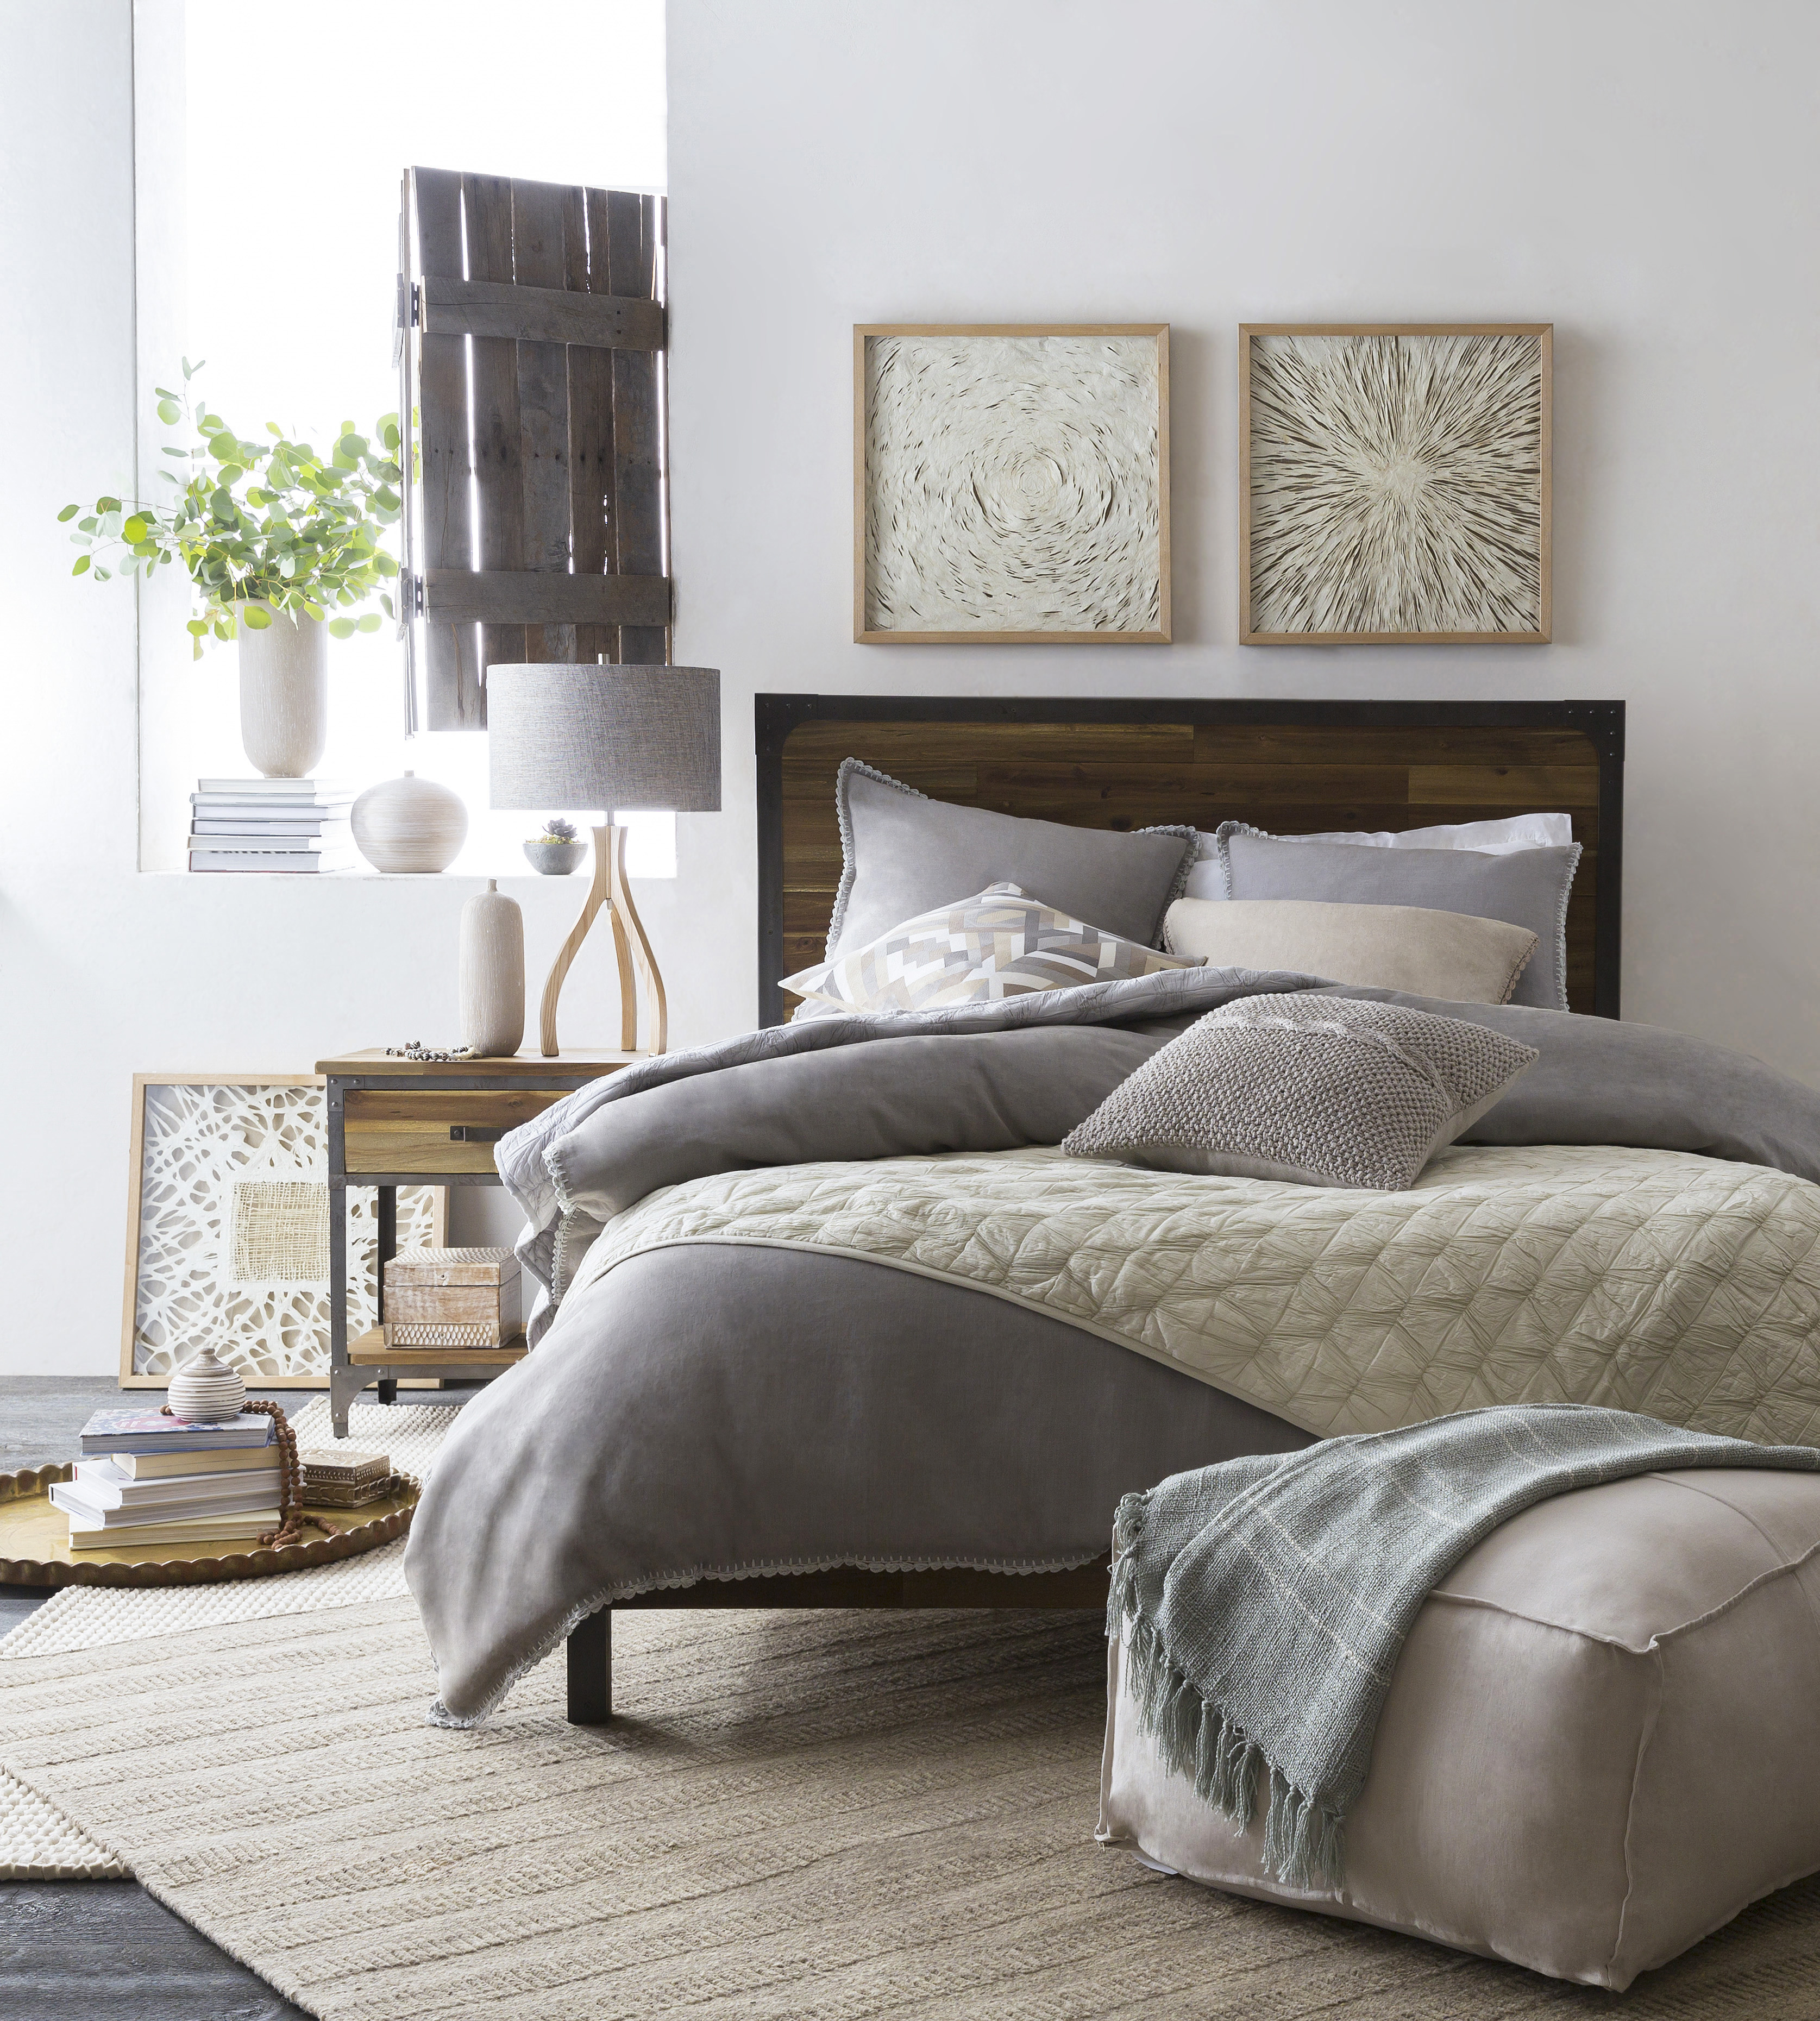 SURYA TO SHOWCASE BROAD SPECTRUM OF BEDDING, LIGHTING DESIGNS AT DALLAS  MARKET 6.17.15